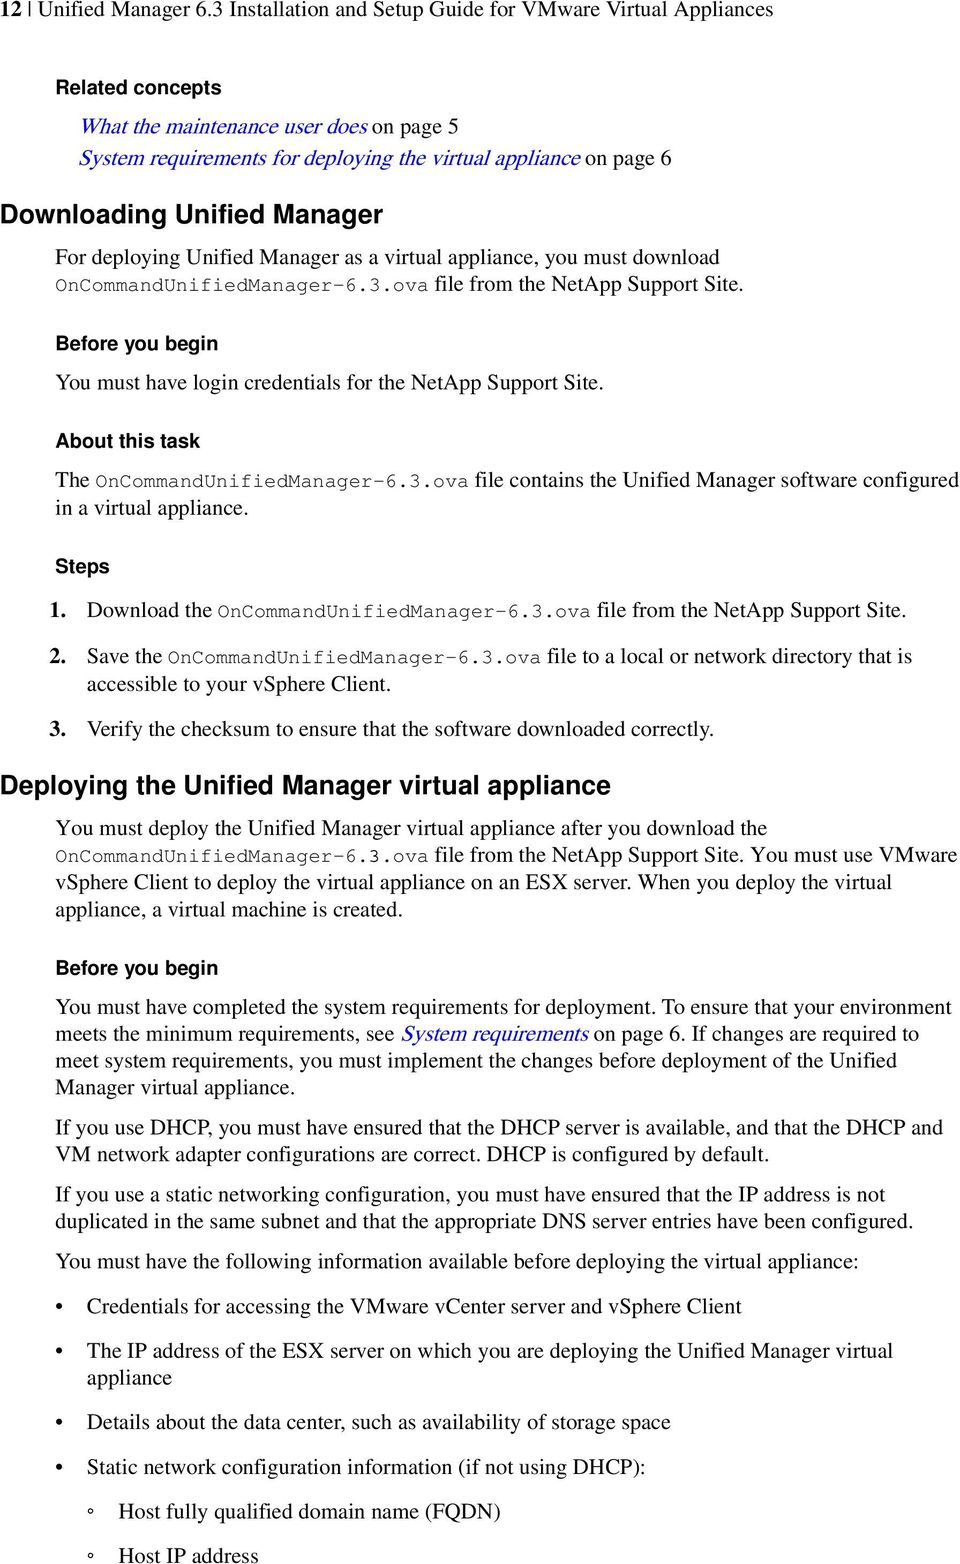 Unified Manager For deploying Unified Manager as a virtual appliance, you must download OnCommandUnifiedManager-6.3.ova file from the NetApp Support Site.